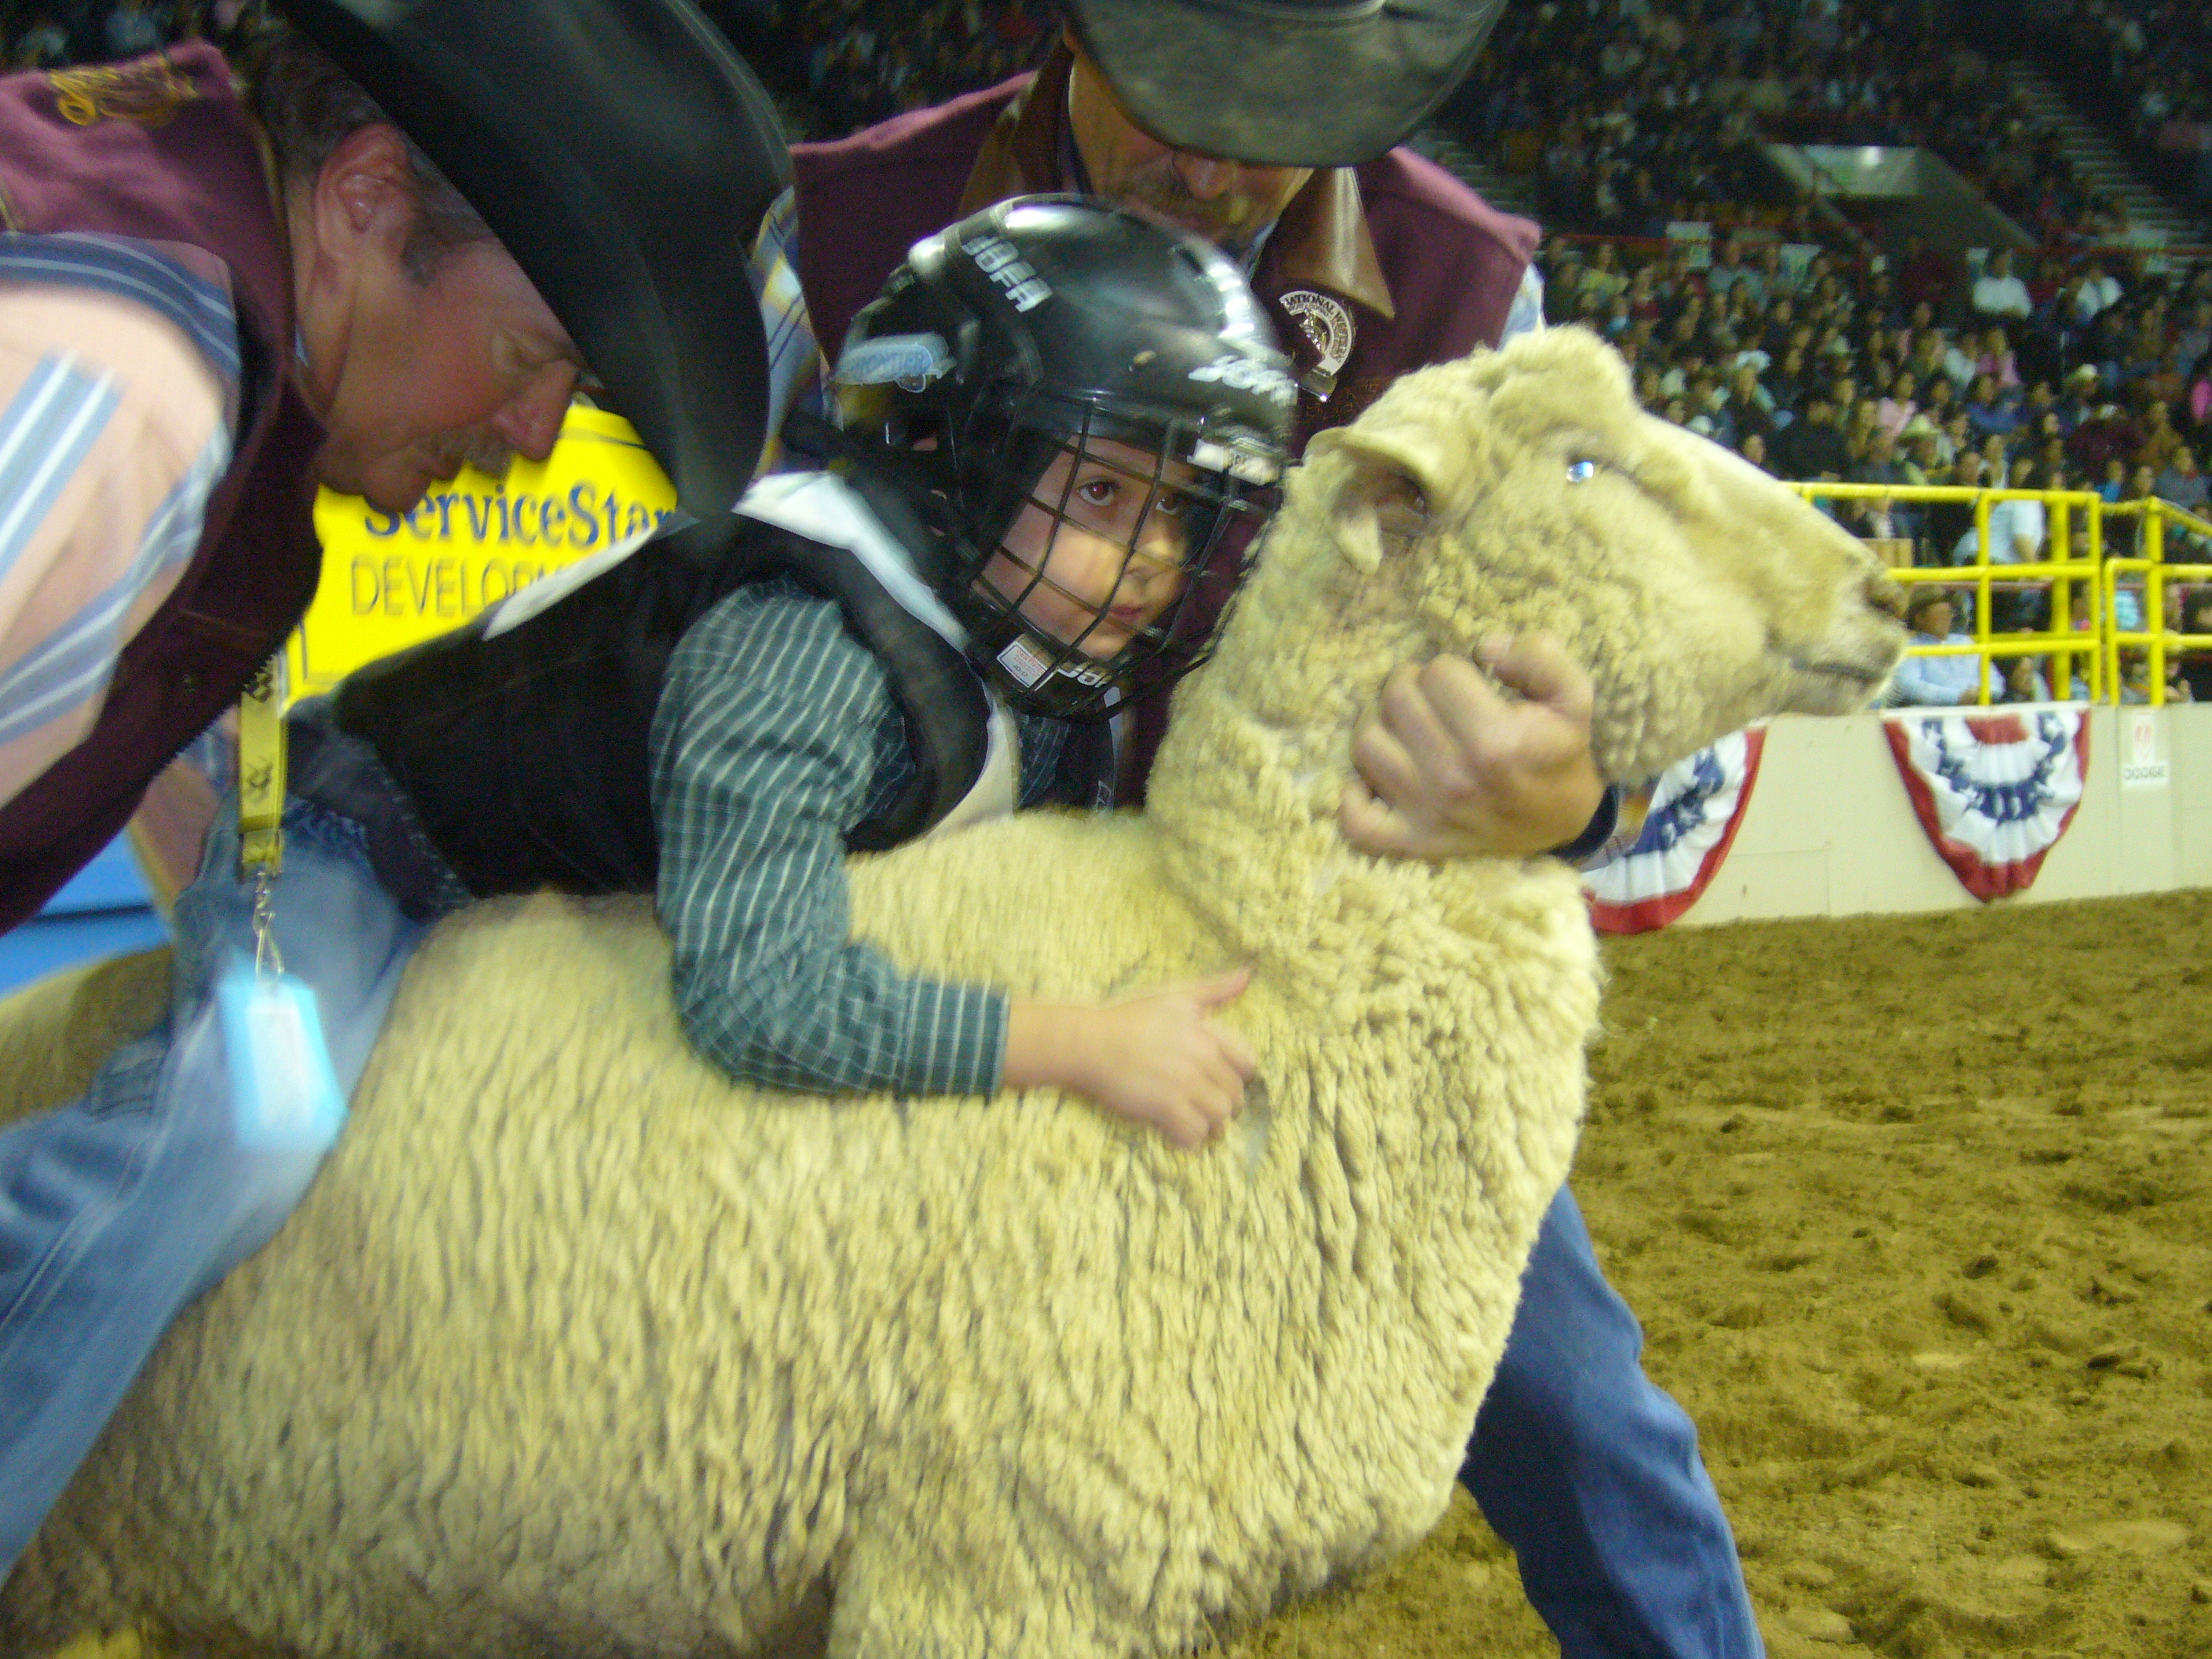 Photo: Mutton buster Asher Kark